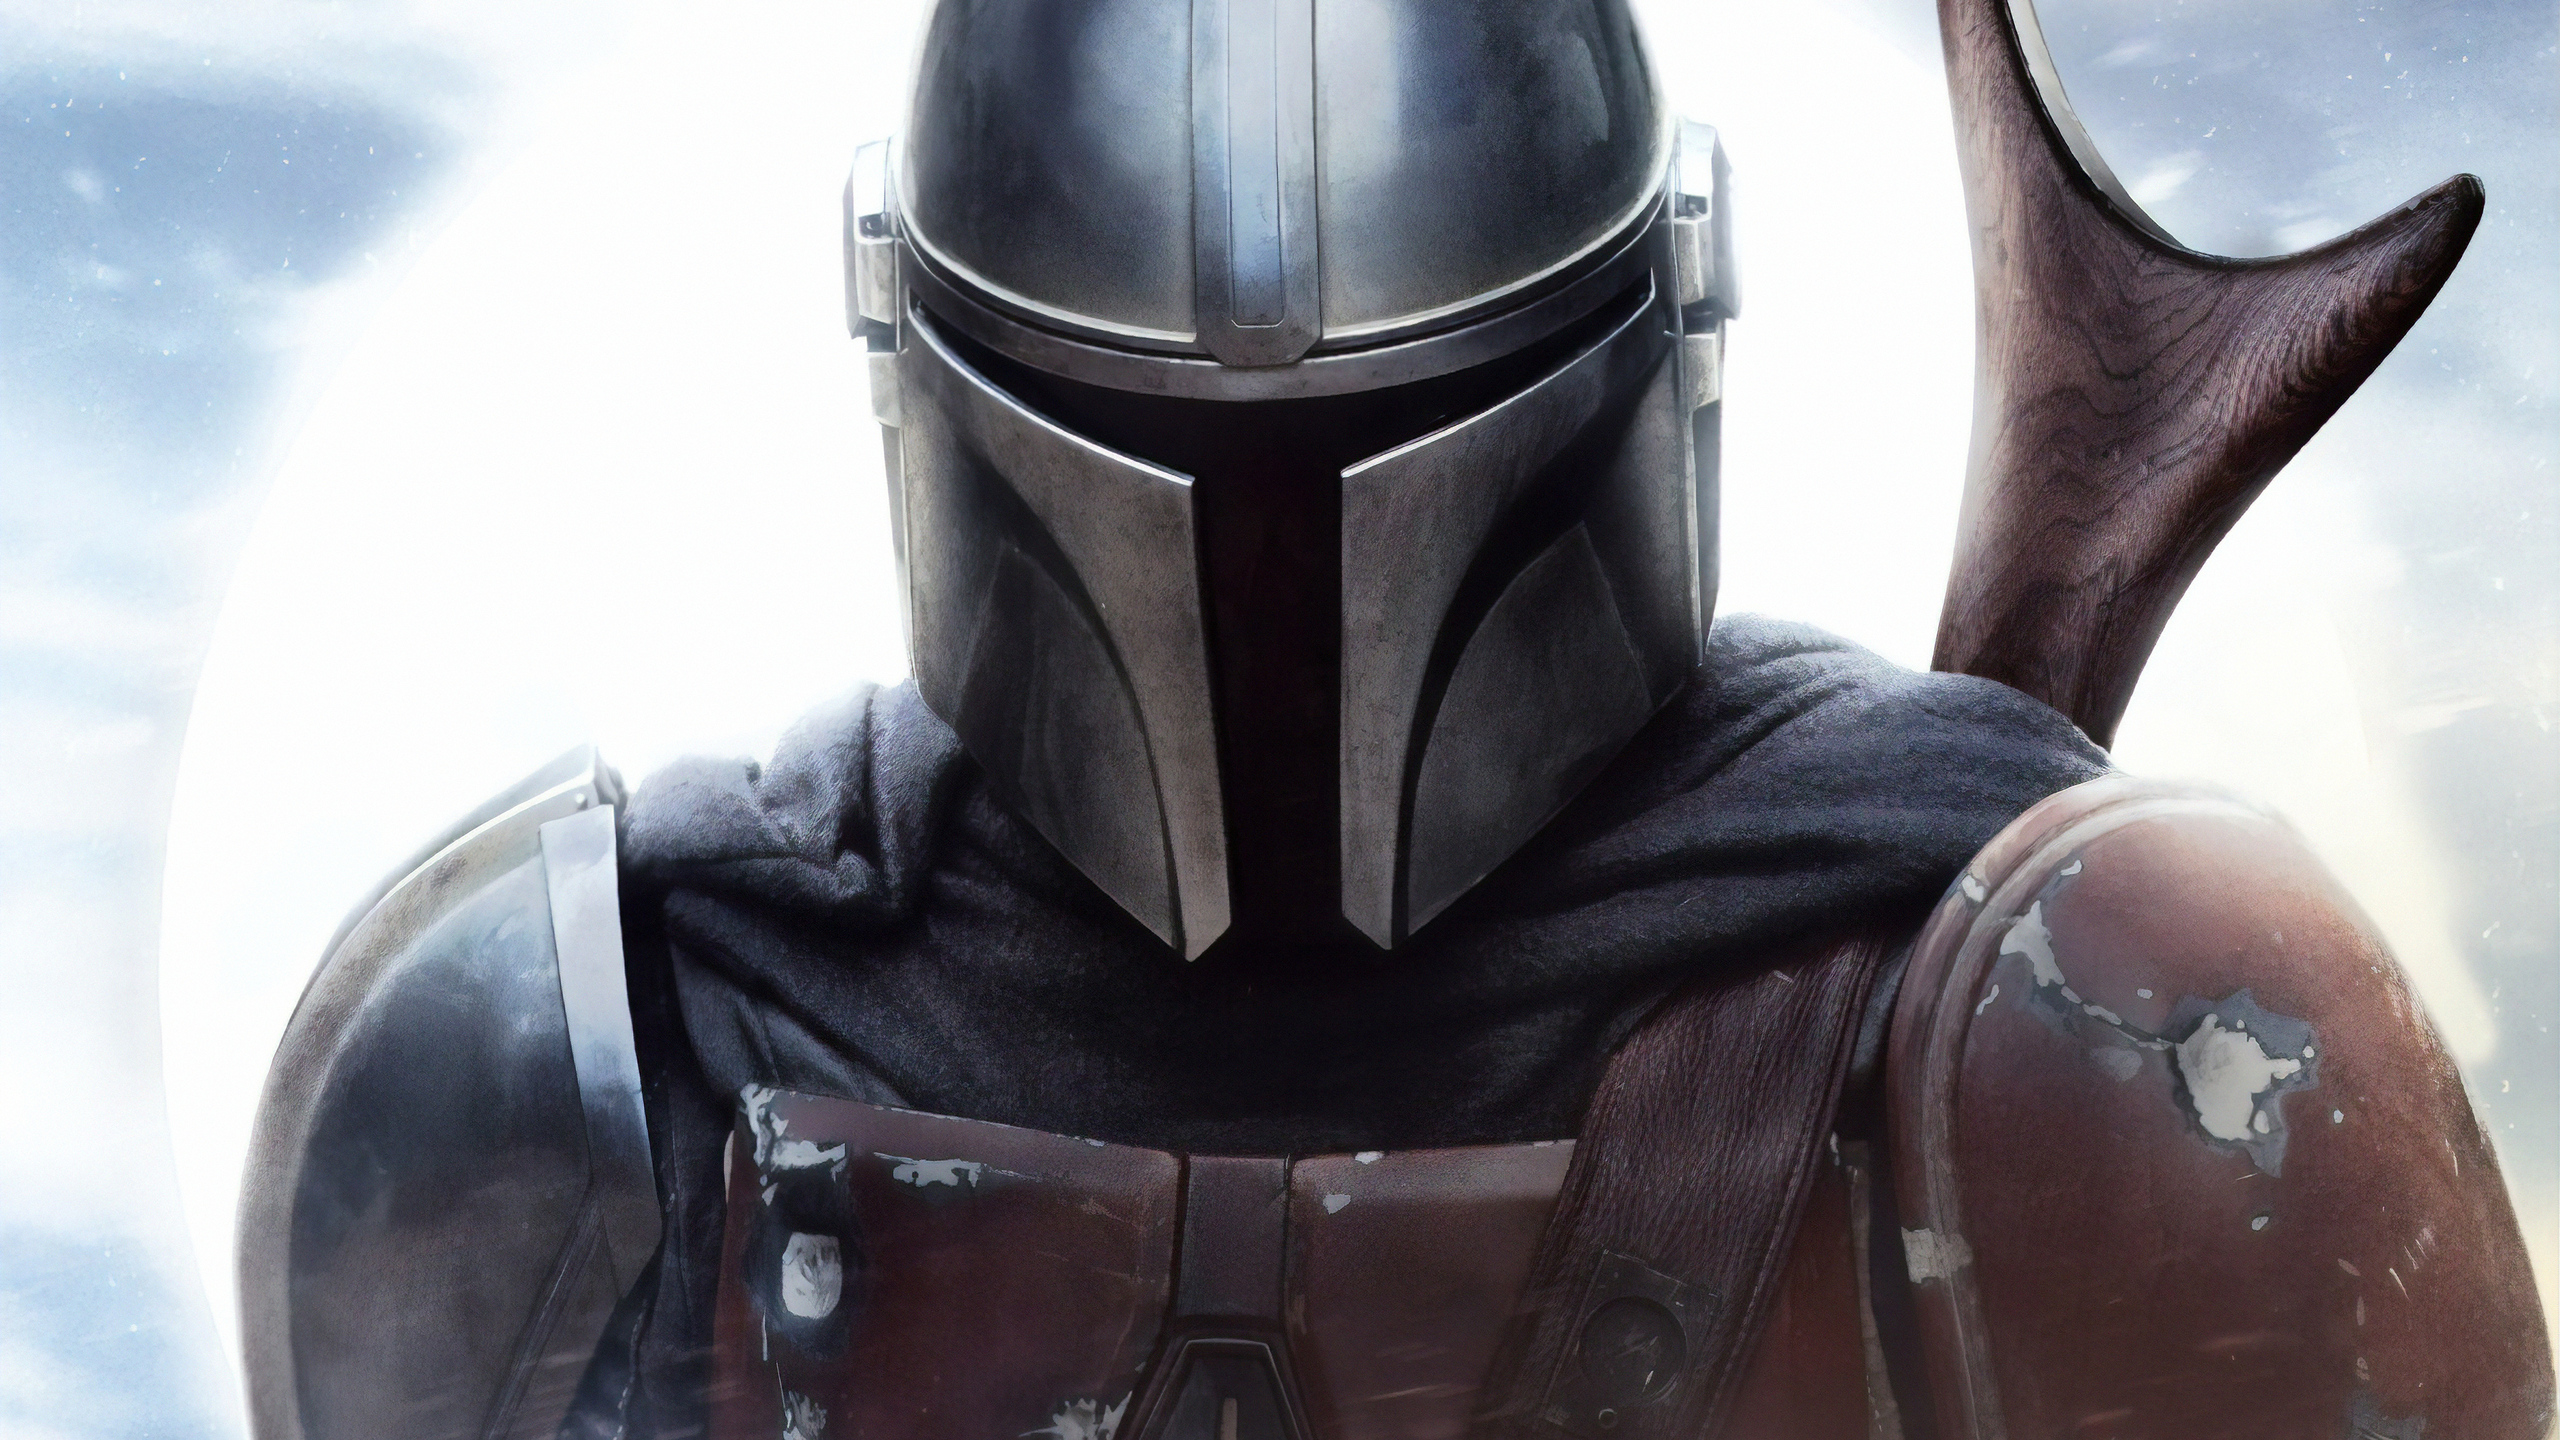 2560x1440 The Mandalorian 4k 2019 1440p Resolution Hd 4k Wallpapers Images Backgrounds Photos And Pictures